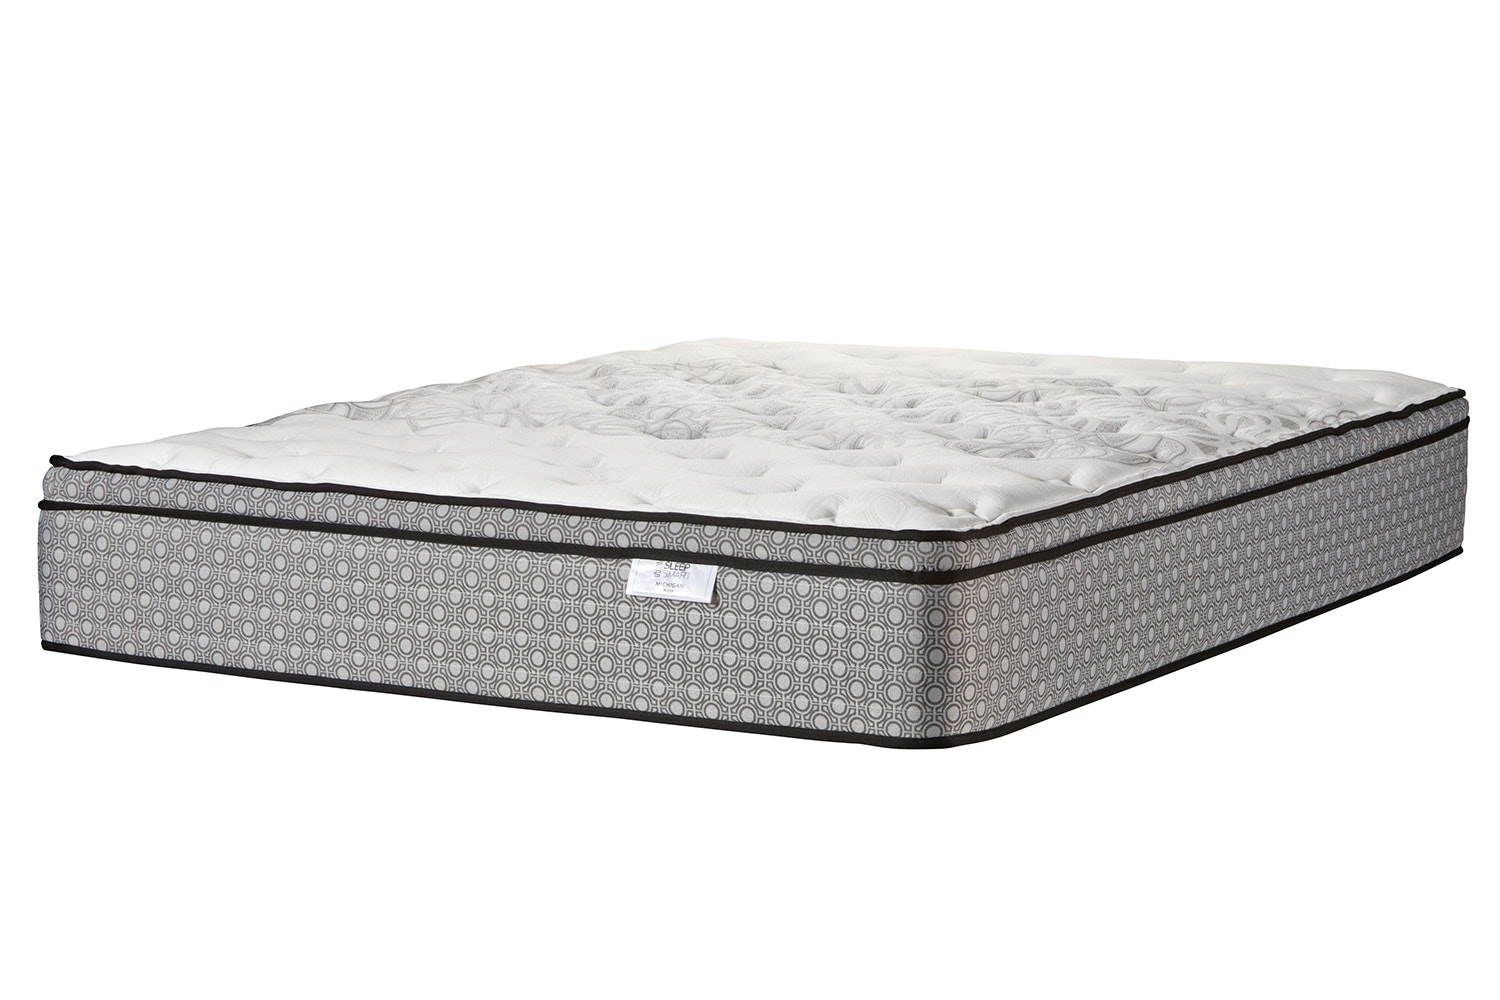 Michigan Plush Long Single Mattress by Sleep Smart